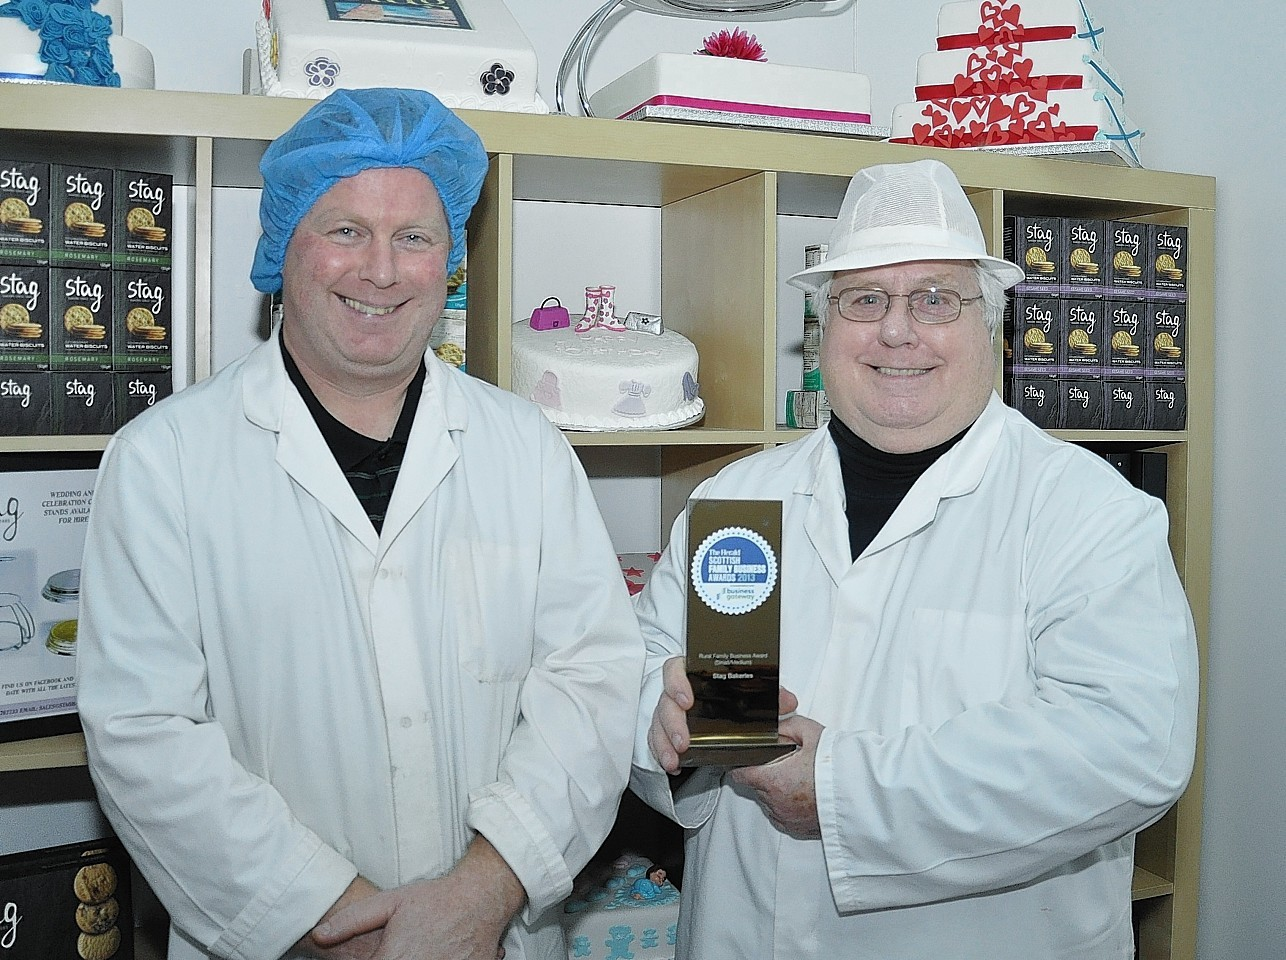 Roddy Macdonald and Charlie Macdonald from Stag Bakeries